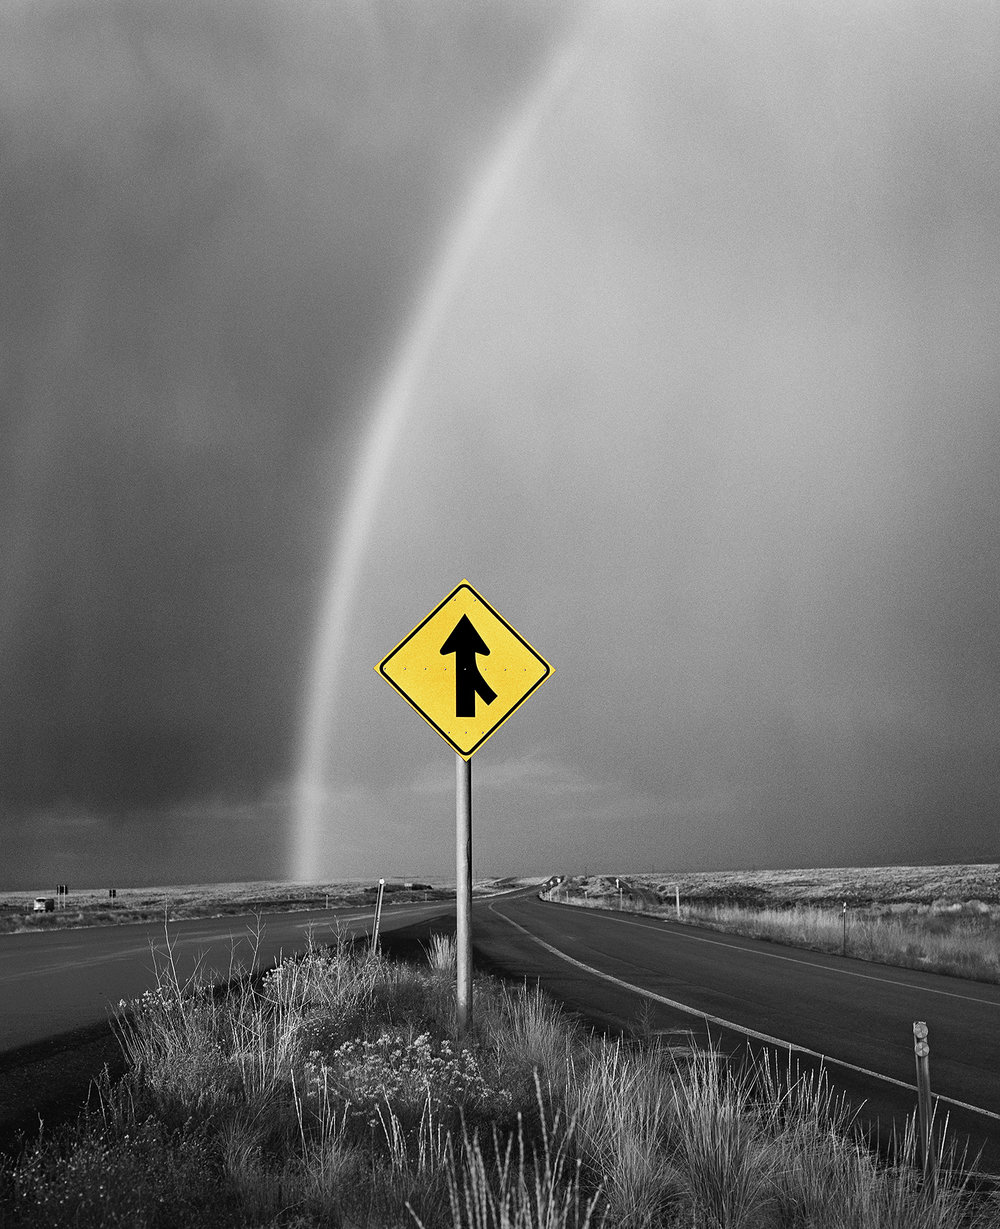 Rainbow & Arrow, Utah, 1979/2015